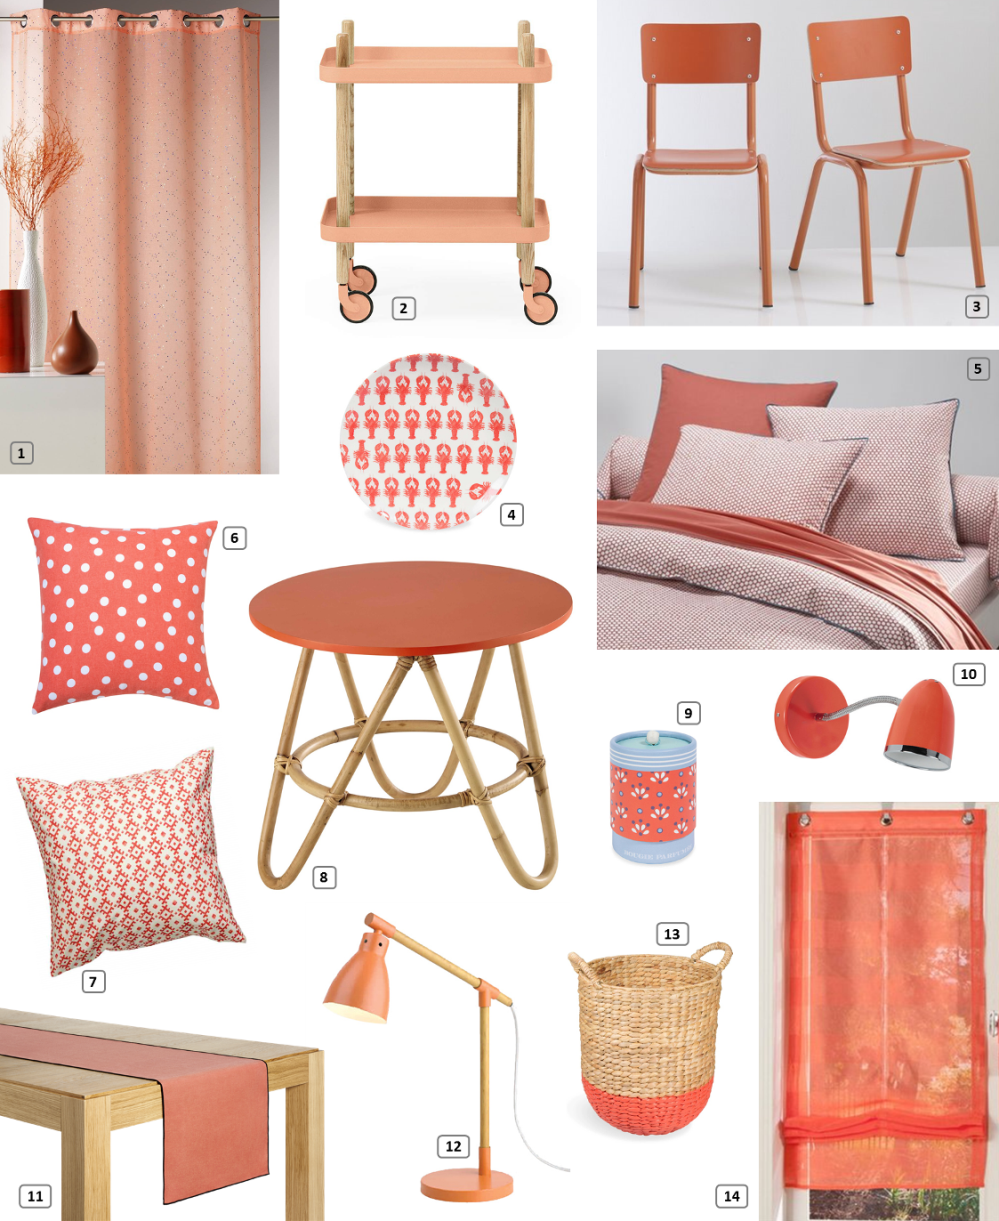 Shopping selection of coral furniture and accessories for the home